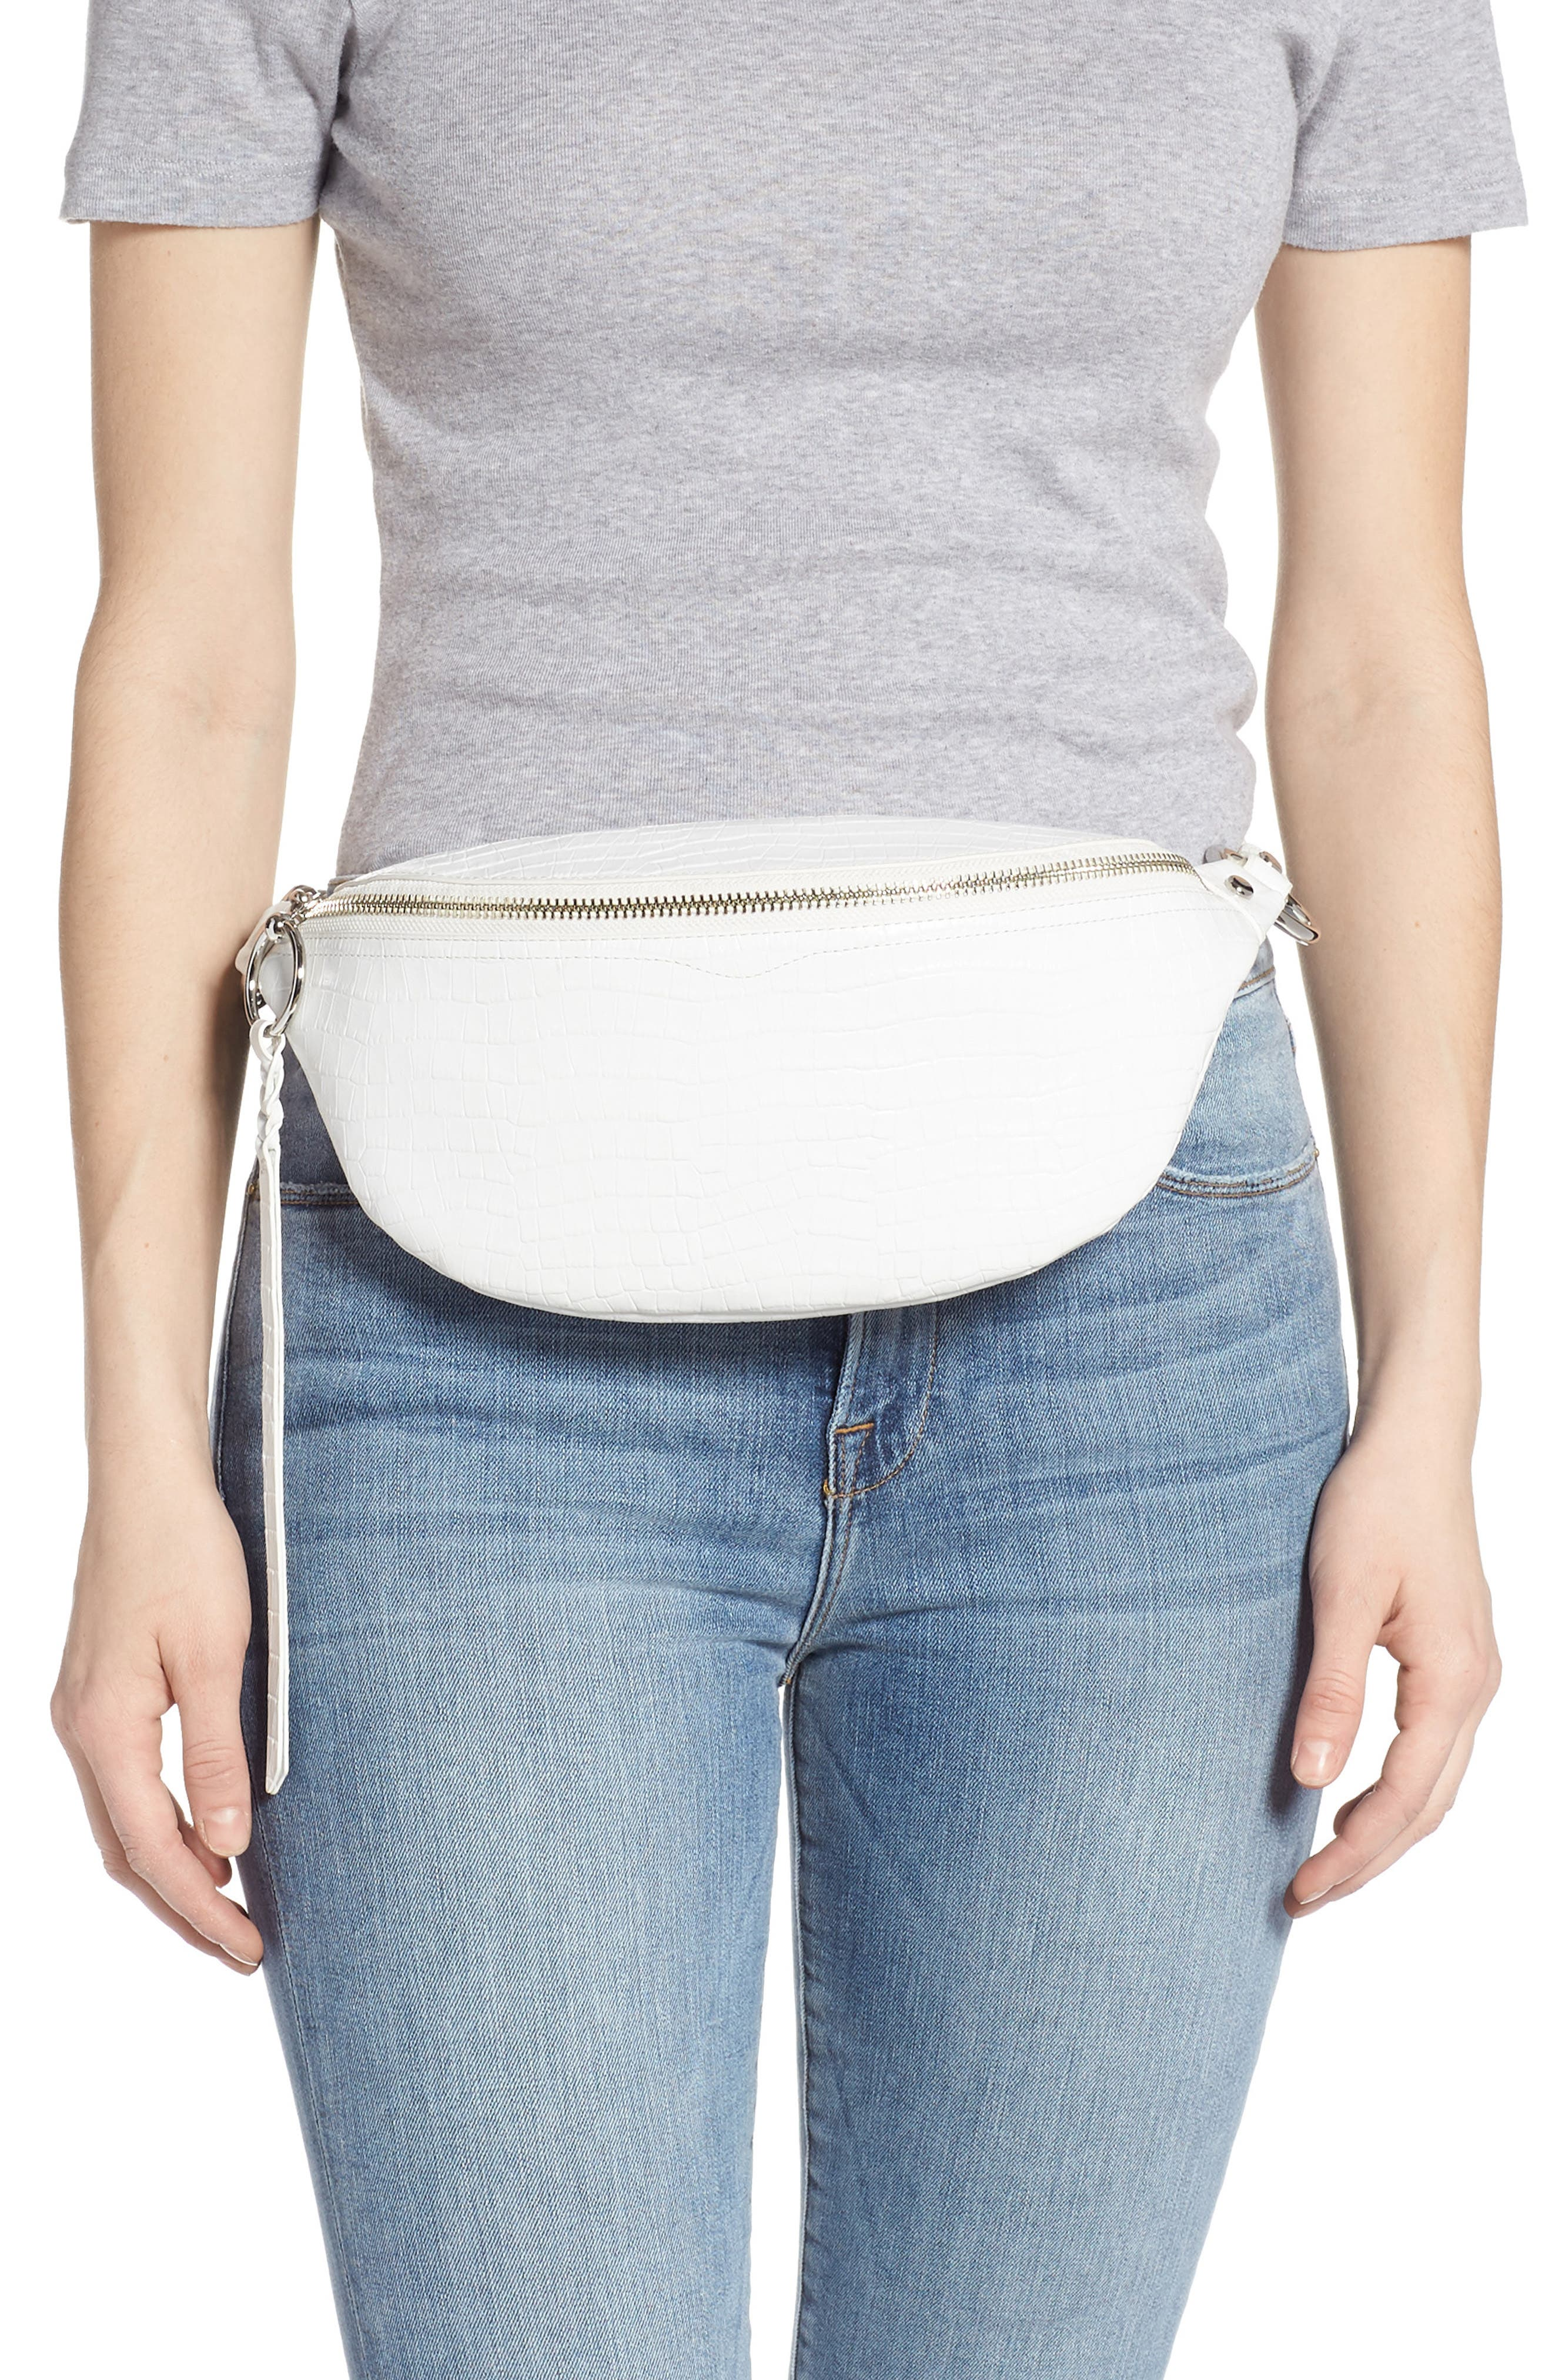 REBECCA MINKOFF, Bree Croc Embossed Leather Belt Bag, Alternate thumbnail 2, color, OPTIC WHITE